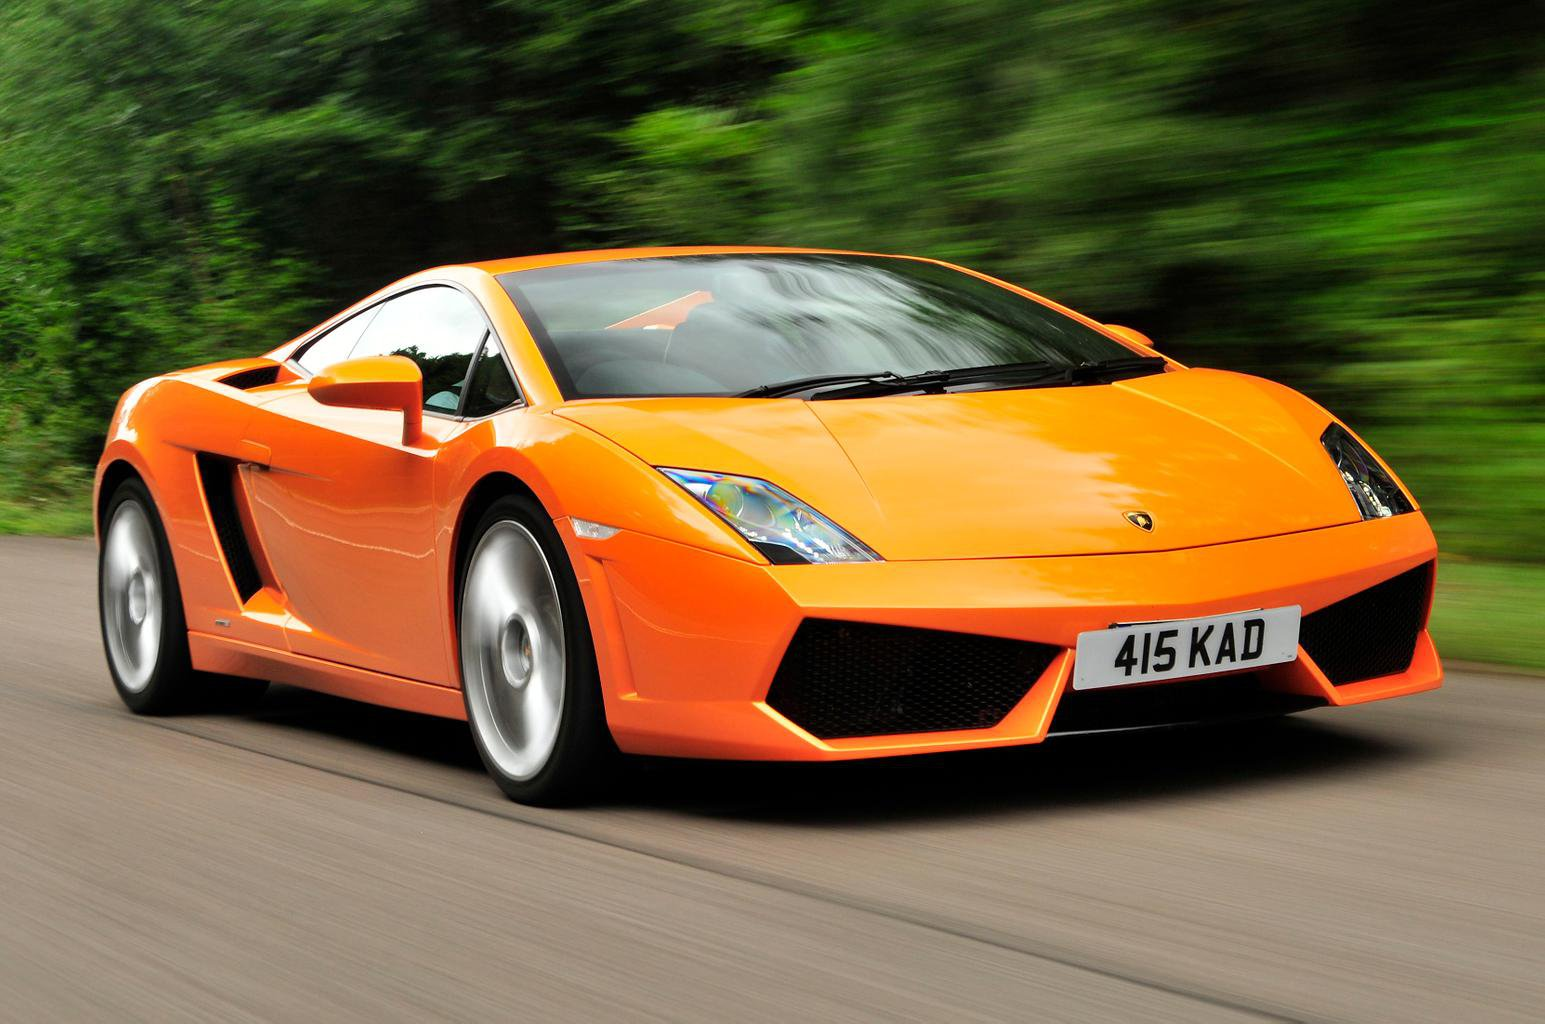 Top 10 used sports cars (and the ones you should avoid)